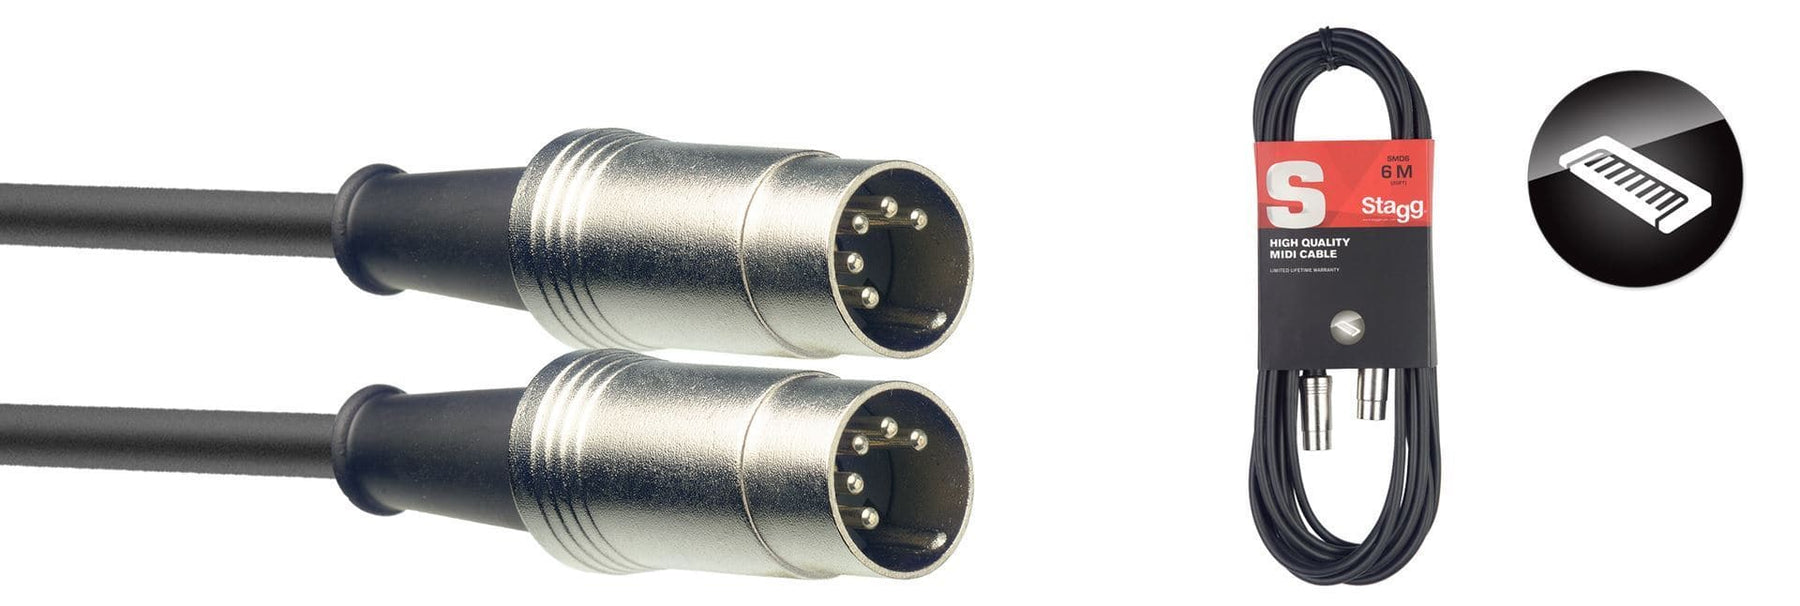 Stagg 6M/20FT MIDI CABLE METAL DINm